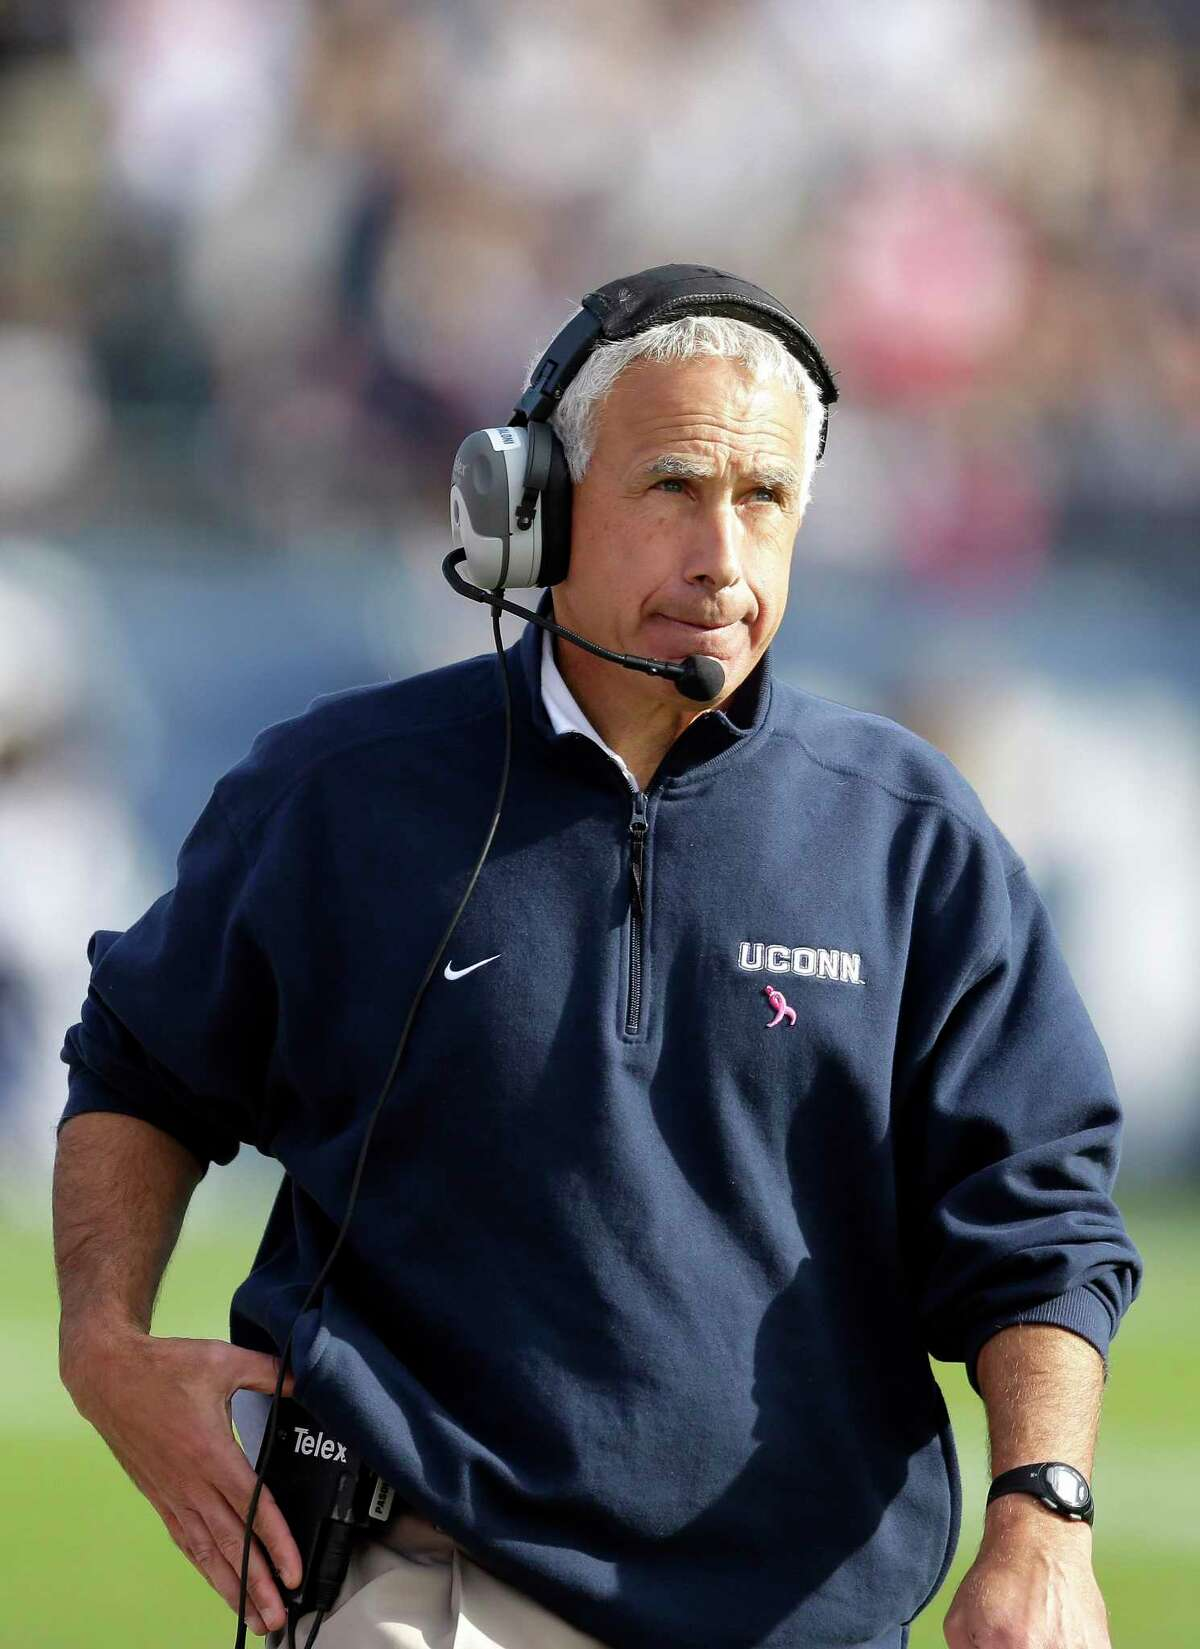 Connecticut head coach Paul Pasqualoni walks on the sidelines in the fourth quarter of an NCAA college football game against Temple in East Hartford, Conn., Saturday, Oct. 13, 2012. Temple won 17-14 in overtime. (AP Photo/Michael Dwyer)